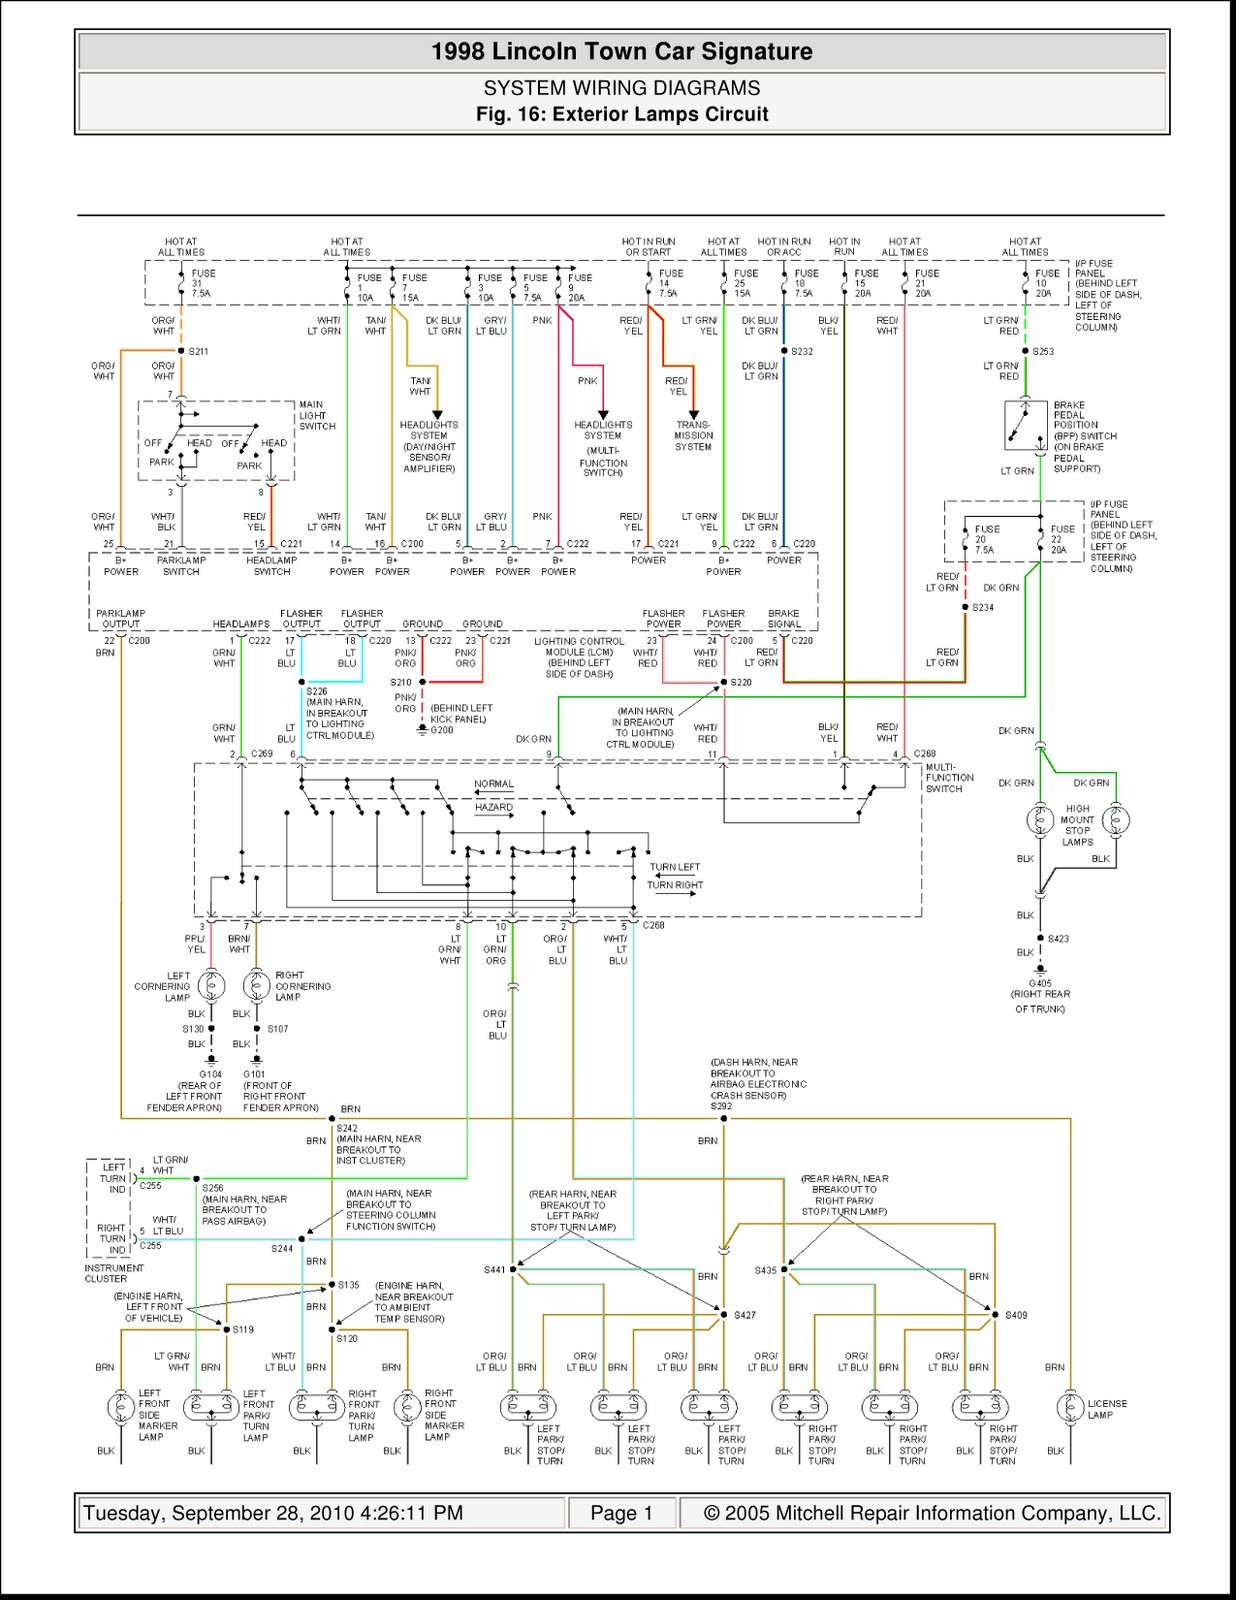 mercury outboard wiring diagram free download wiring diagram xwiaw rh xwiaw us Mercury 150 Wiring Diagram 1996 Mercury 50 Wiring Diagram